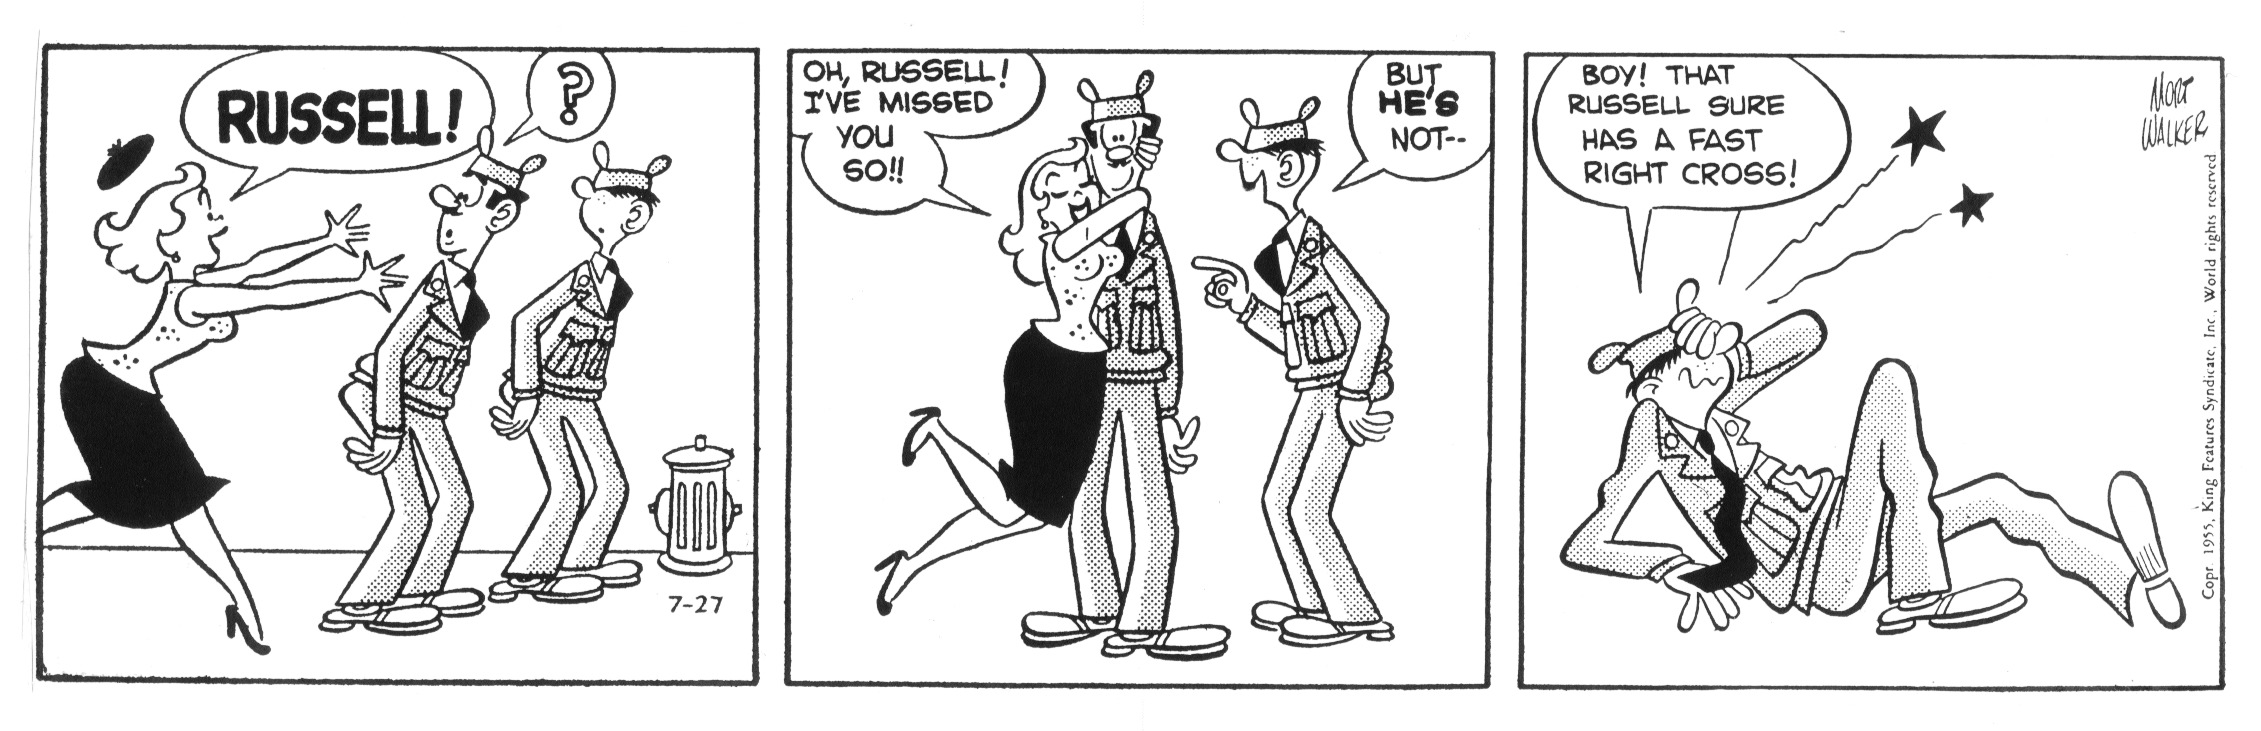 Beetle Bailey daily strip, July 27, 1955.